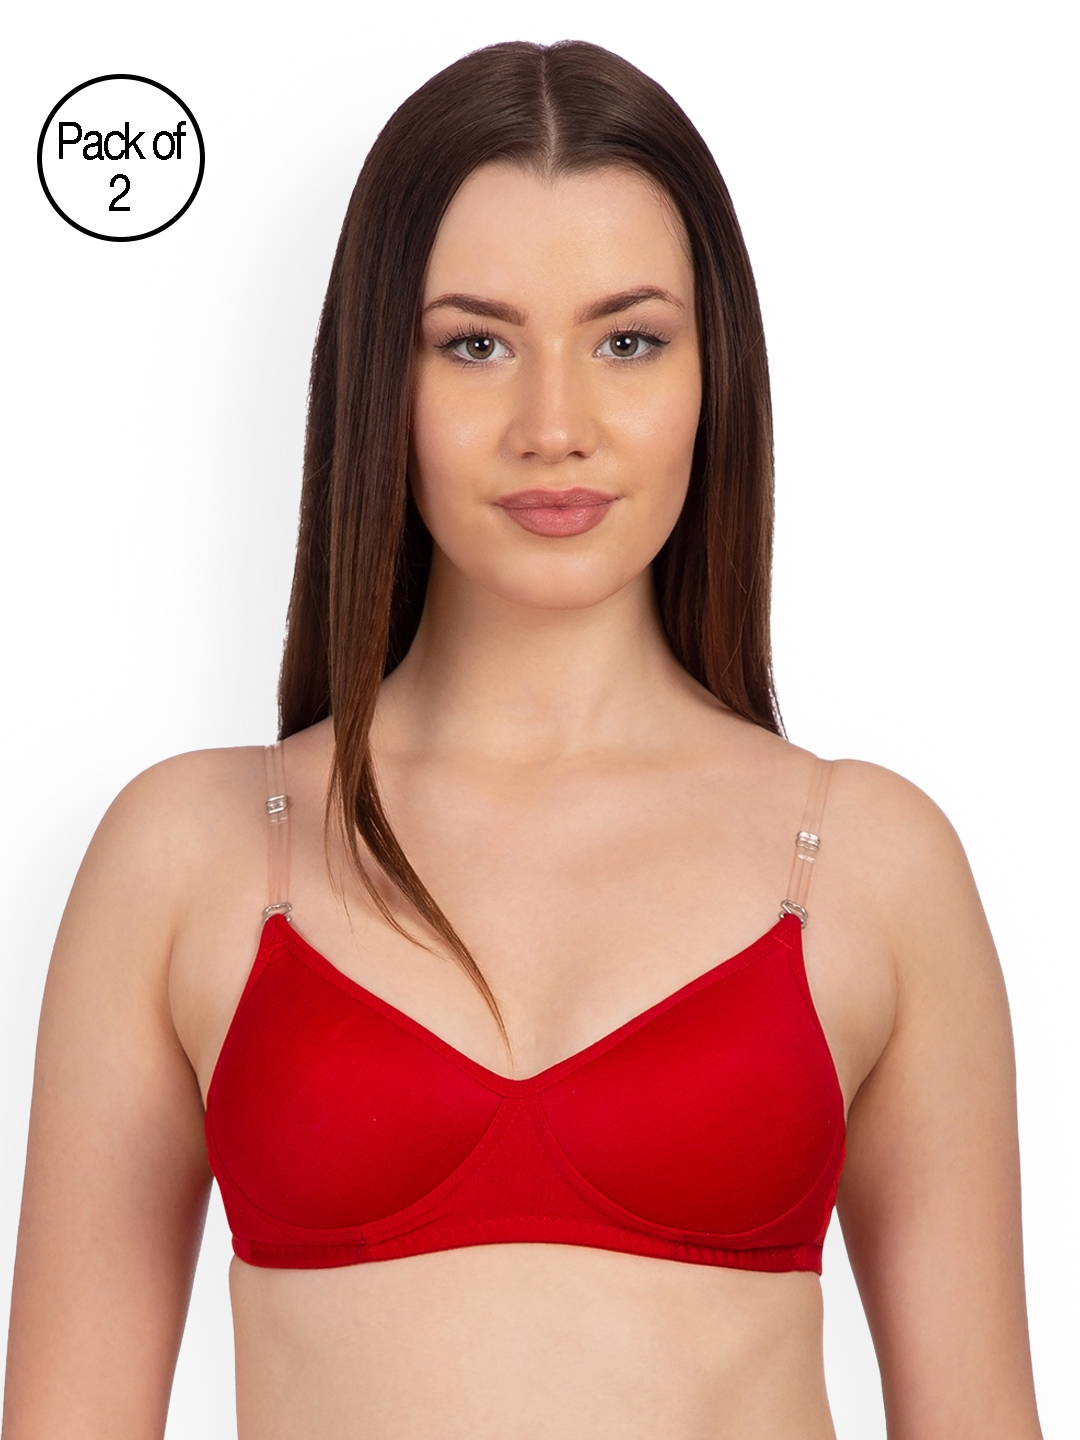 4d9802957f3 Komli Pack of 2 Non-Wired Heavily Padded Transparent Back T-shirt Bras  K9515-2PC-RD